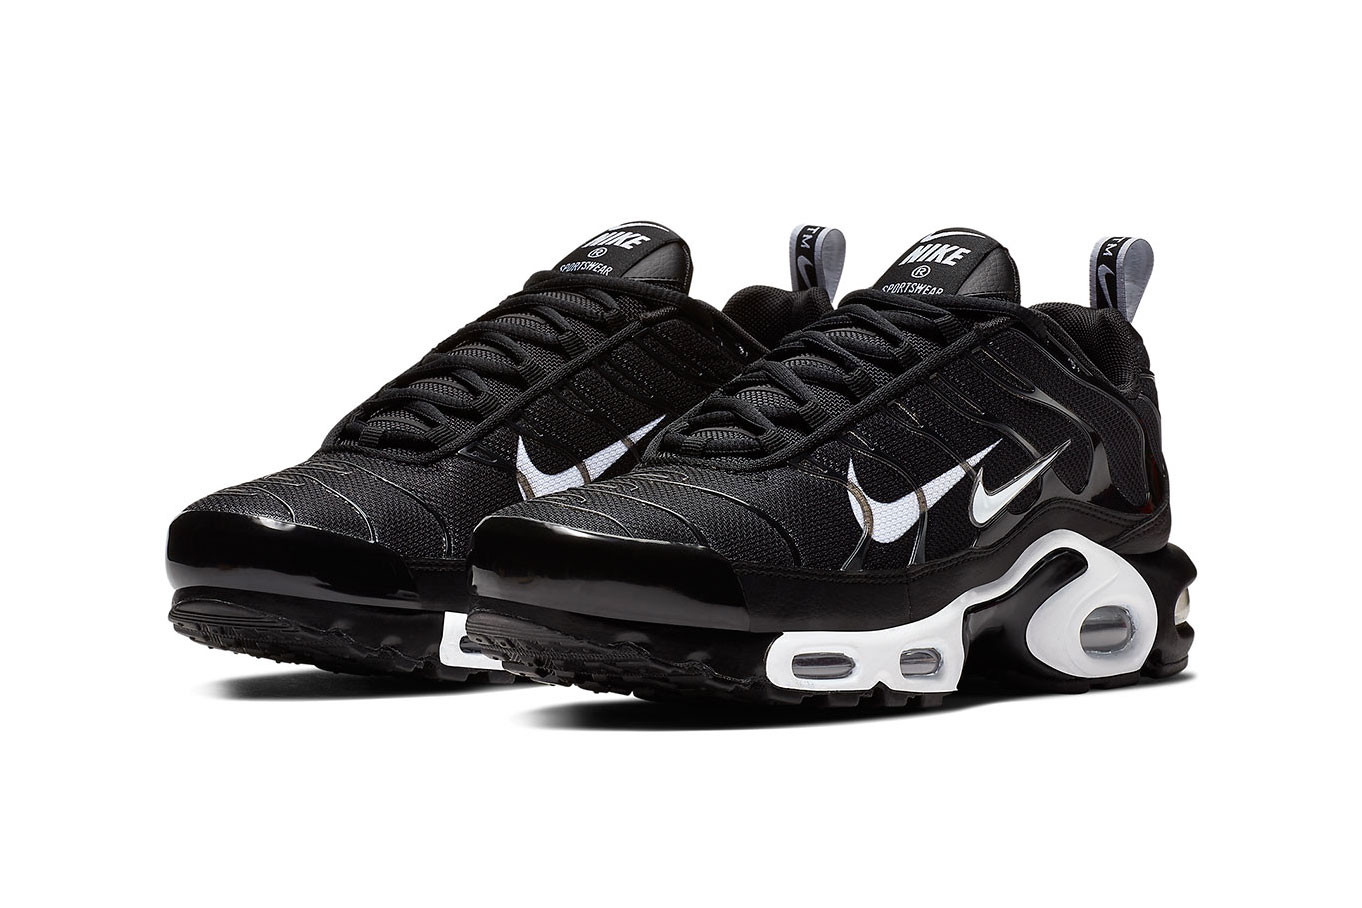 reputable site 8acce c156c Nike are Doubling Up the Swooshes on an Upcoming Air Max ...